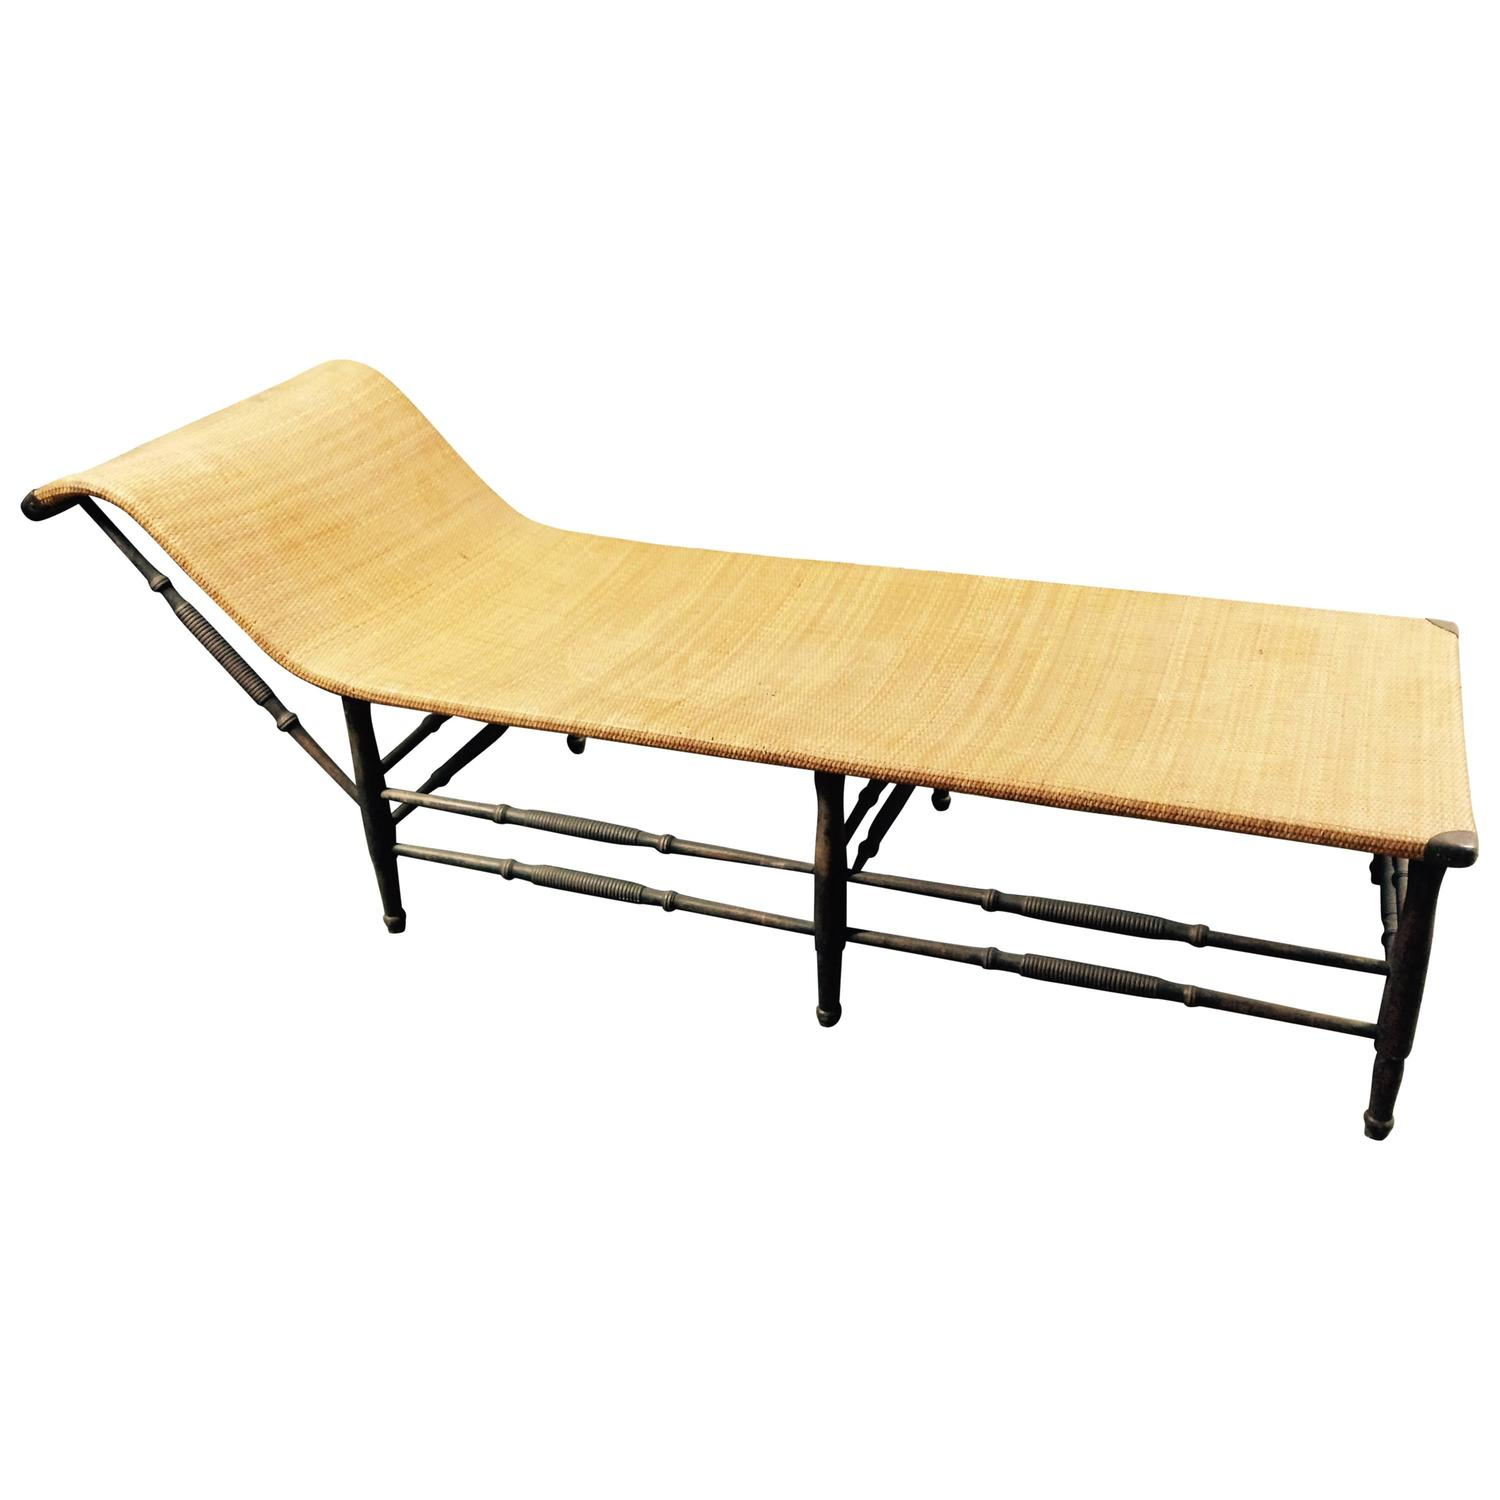 Antique rattan chaise longue for sale at 1stdibs for Chaise longue antique